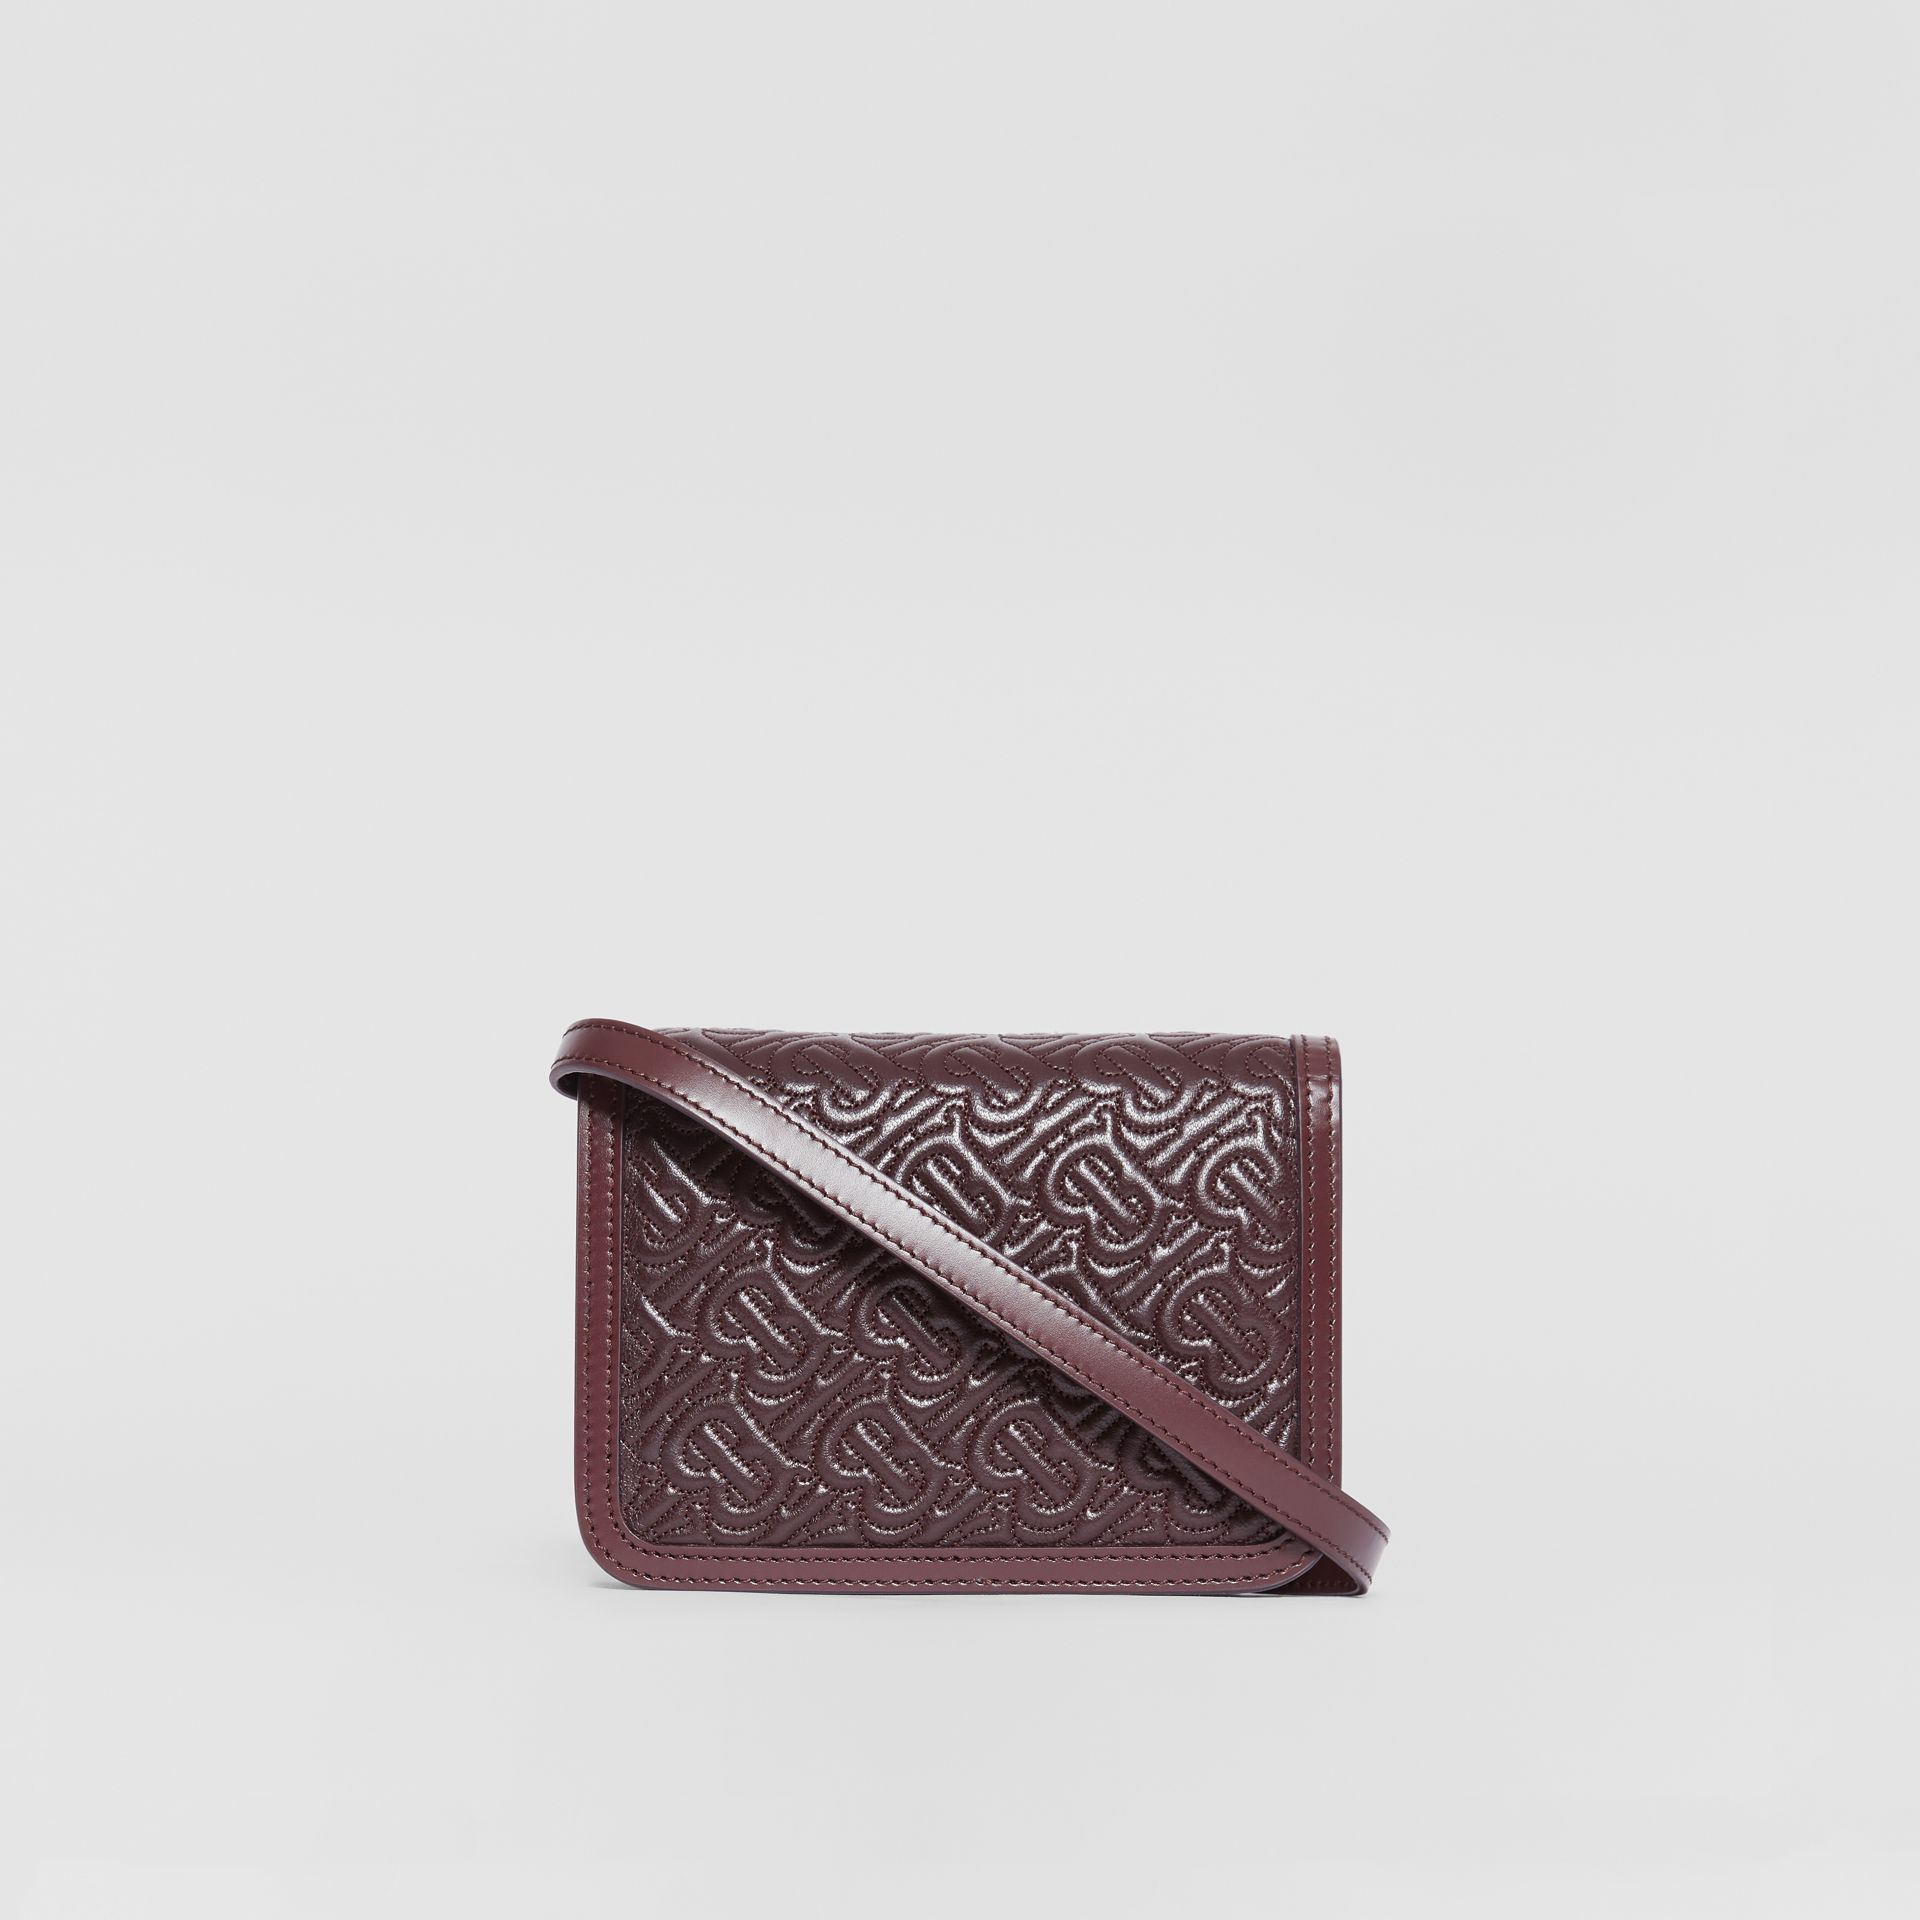 Mini Quilted Monogram Lambskin TB Bag in Dark Burgundy - Women | Burberry Hong Kong S.A.R - gallery image 7